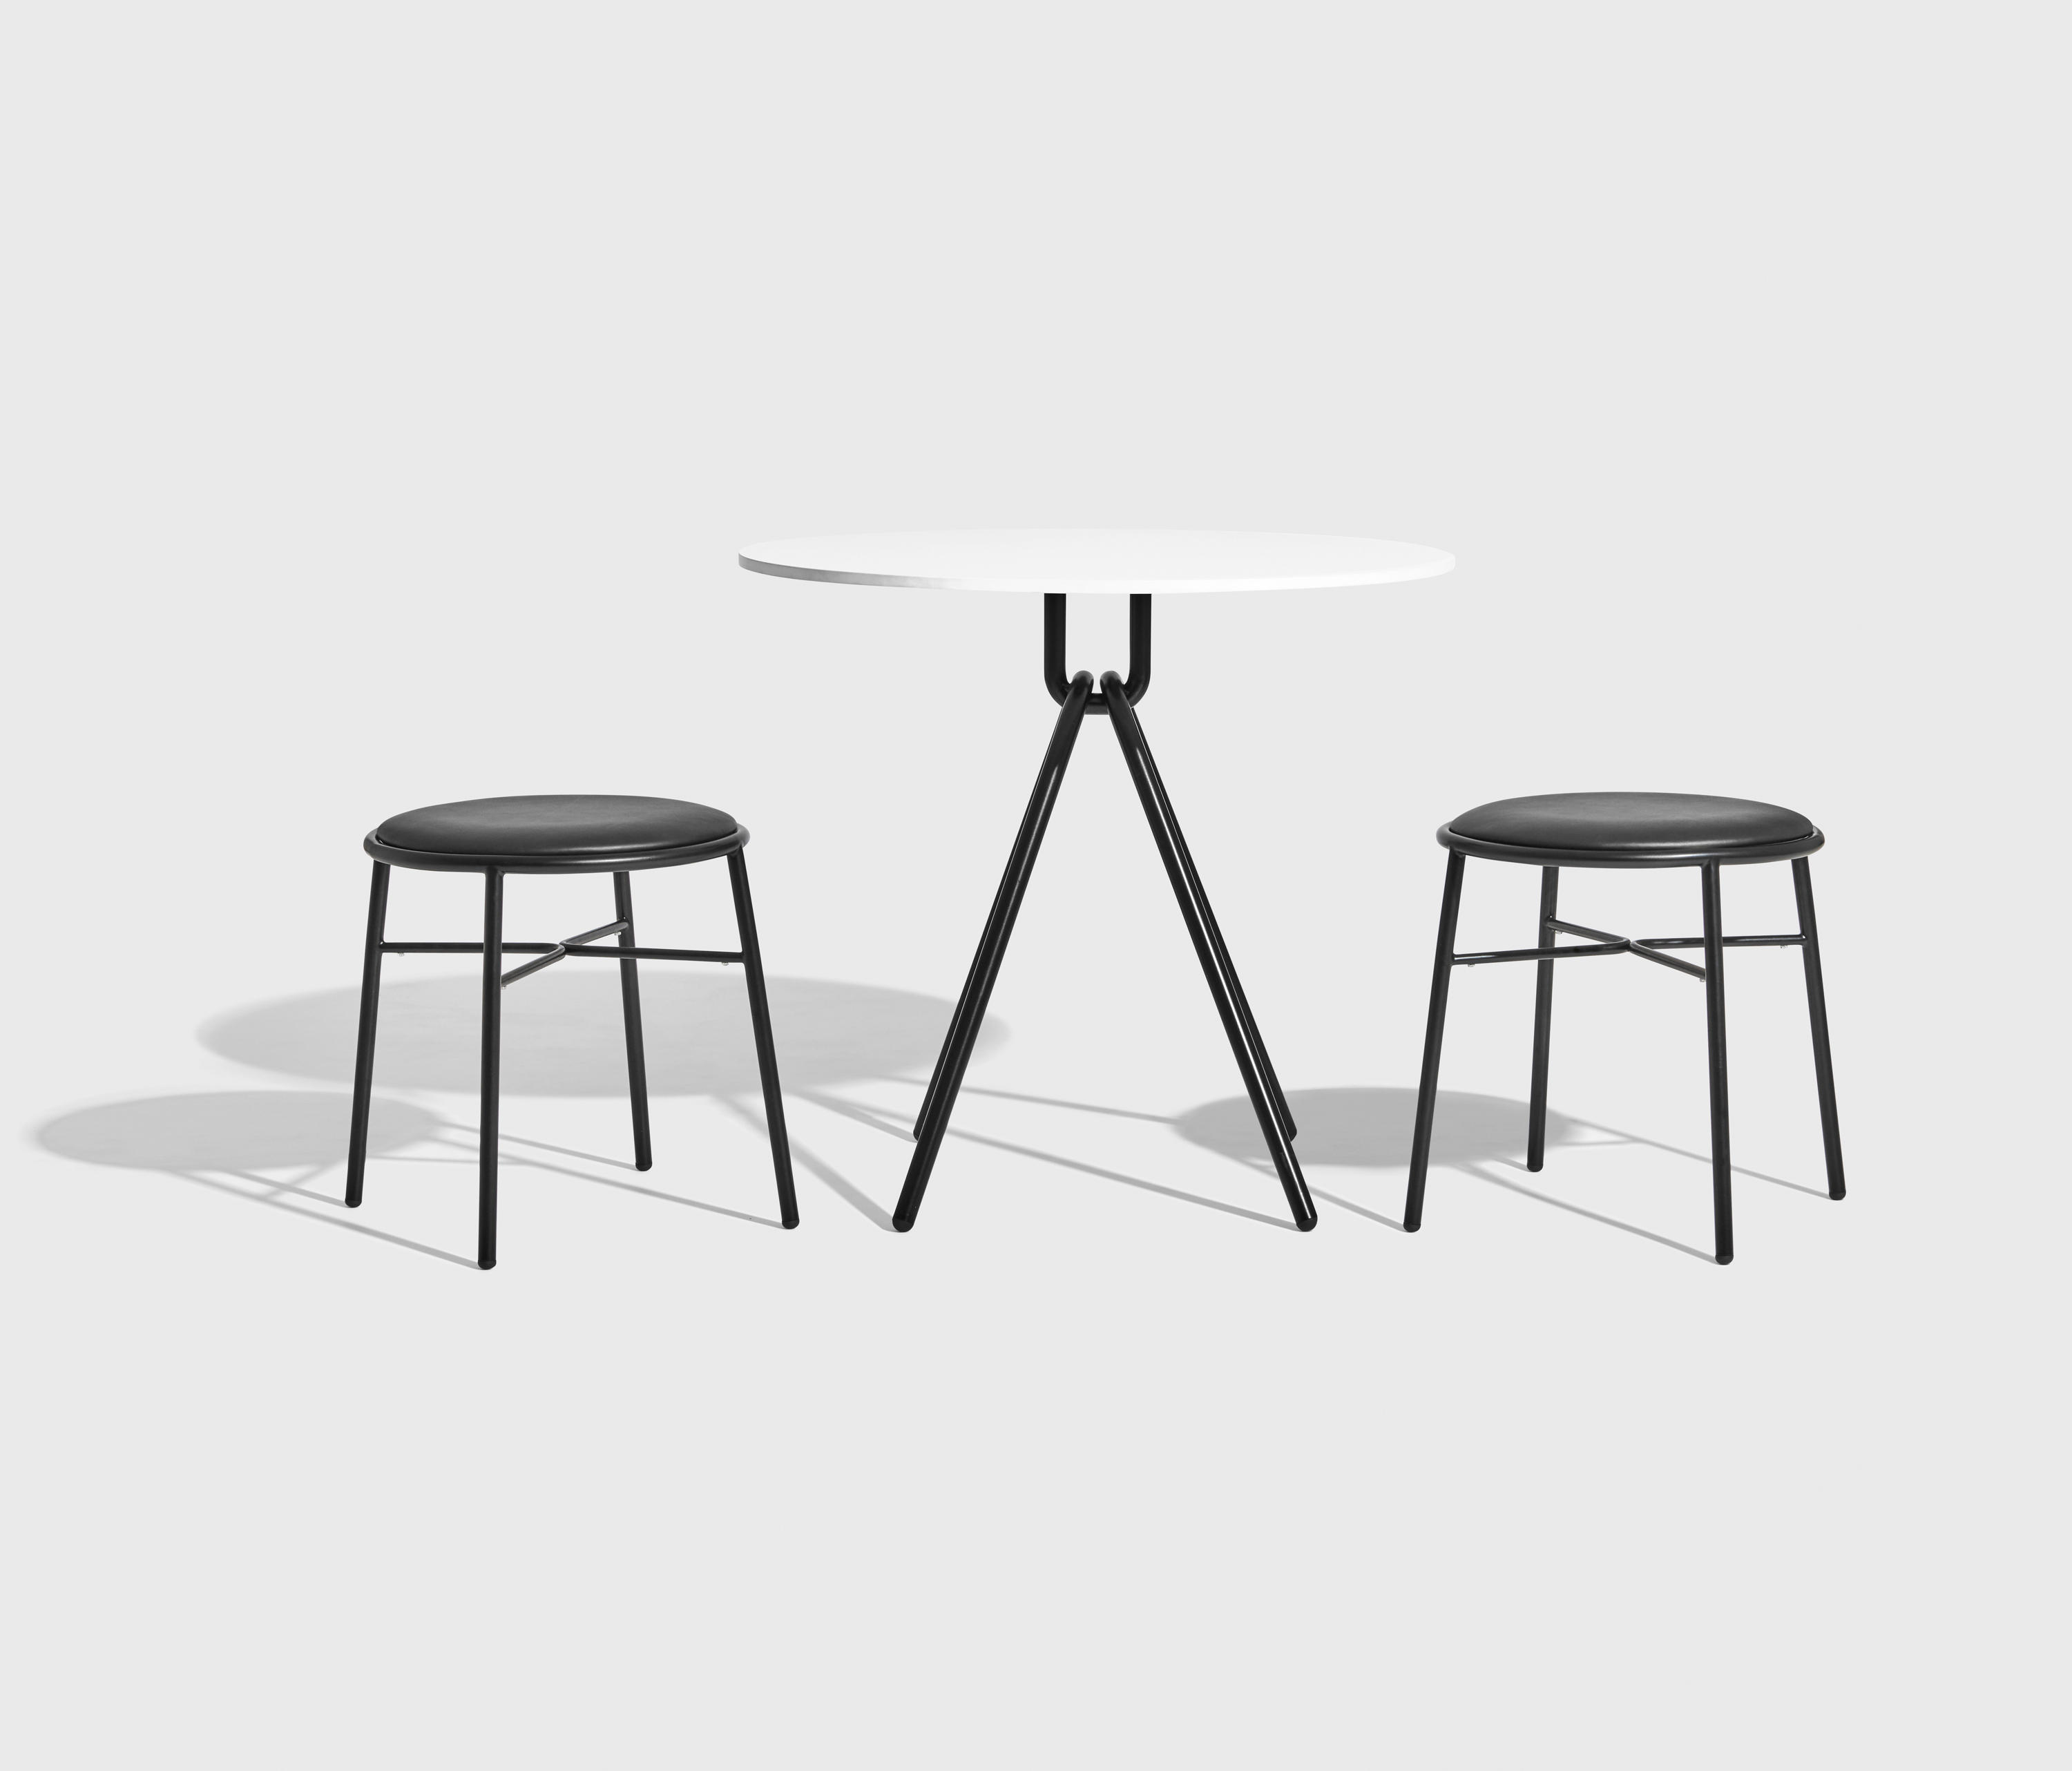 Amazing Piper Bar Stool Designer Furniture Architonic Gmtry Best Dining Table And Chair Ideas Images Gmtryco